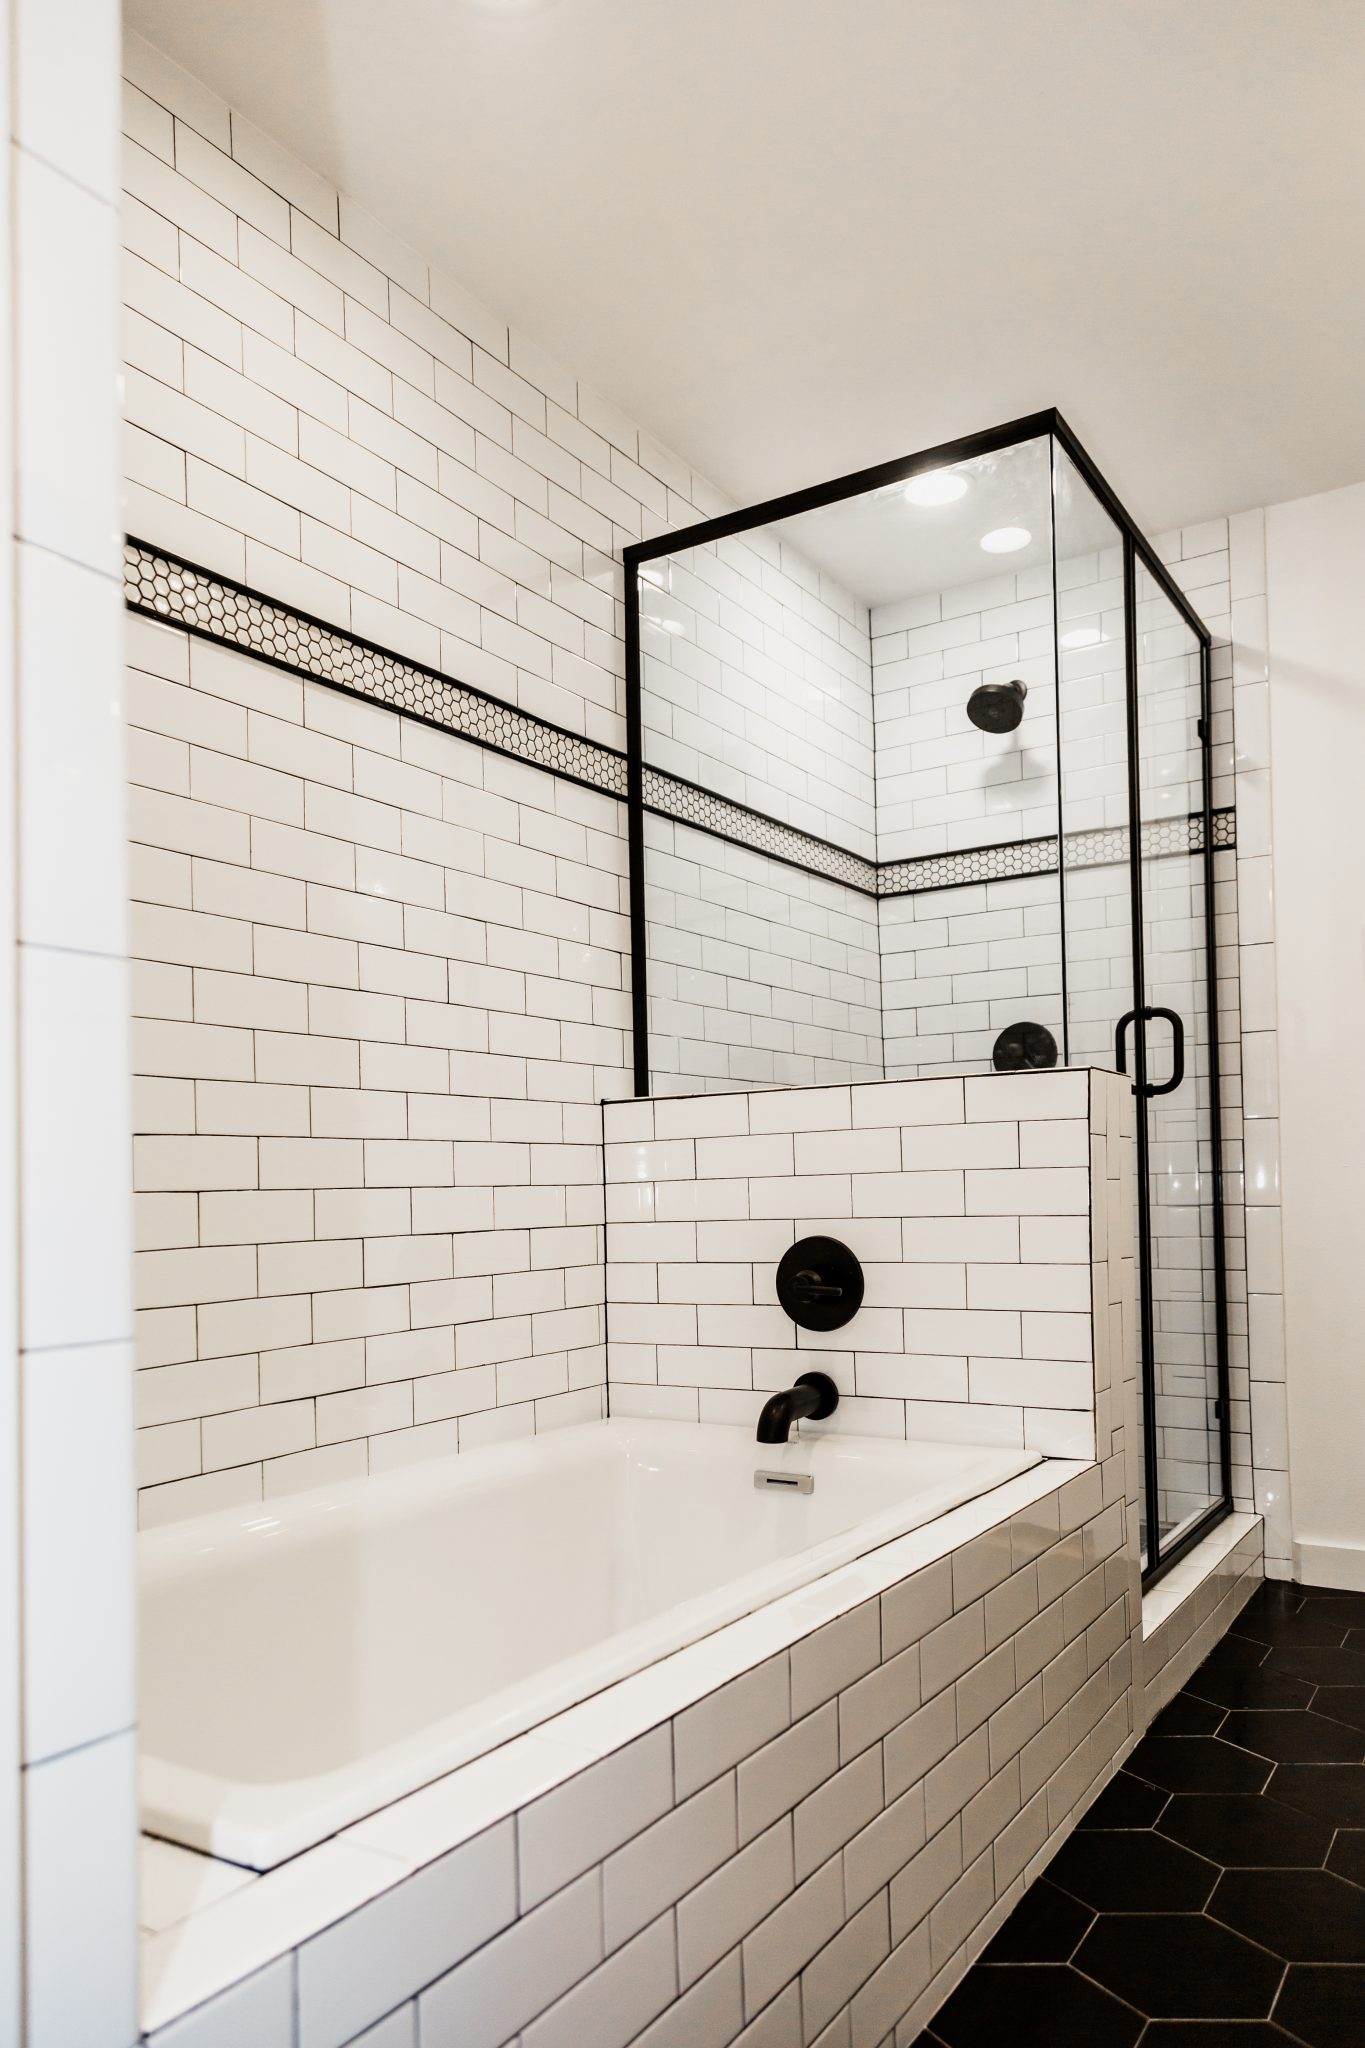 Black frame shower, drop in bathtub with subway tiles, Matte black fixtures, subway tile wall surround, Shower and bathtub connected